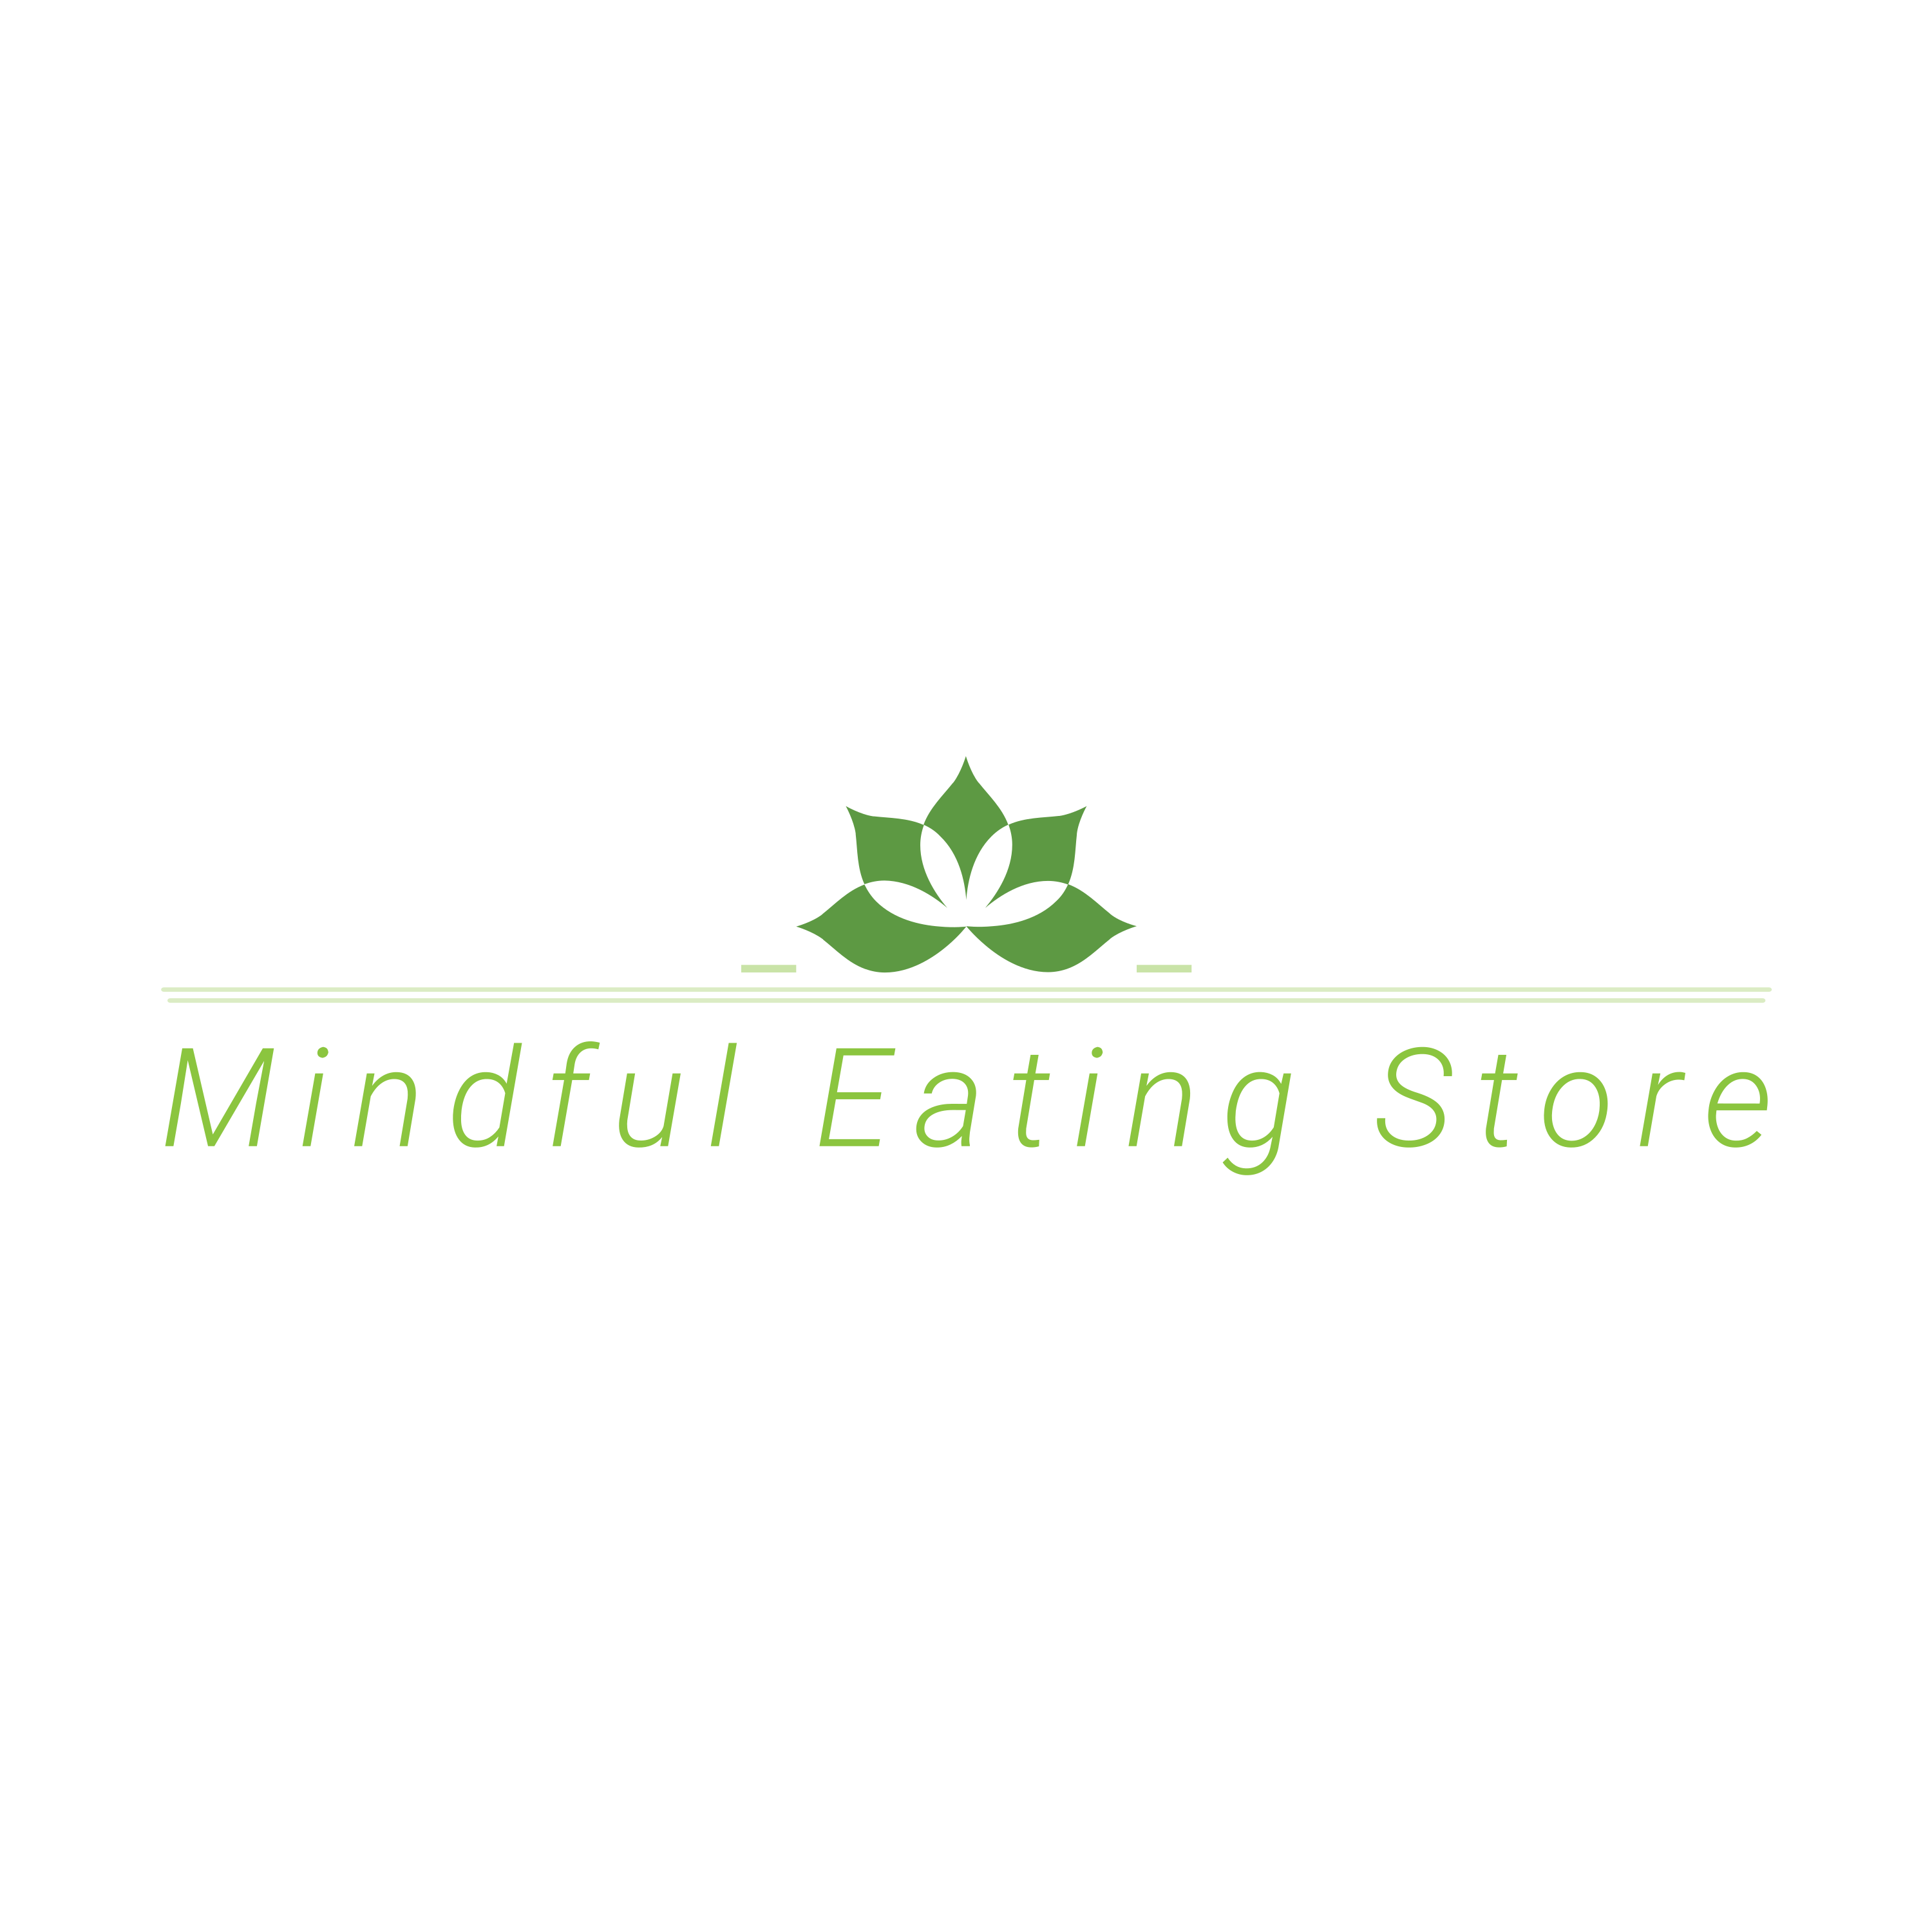 Mindful Eating Store